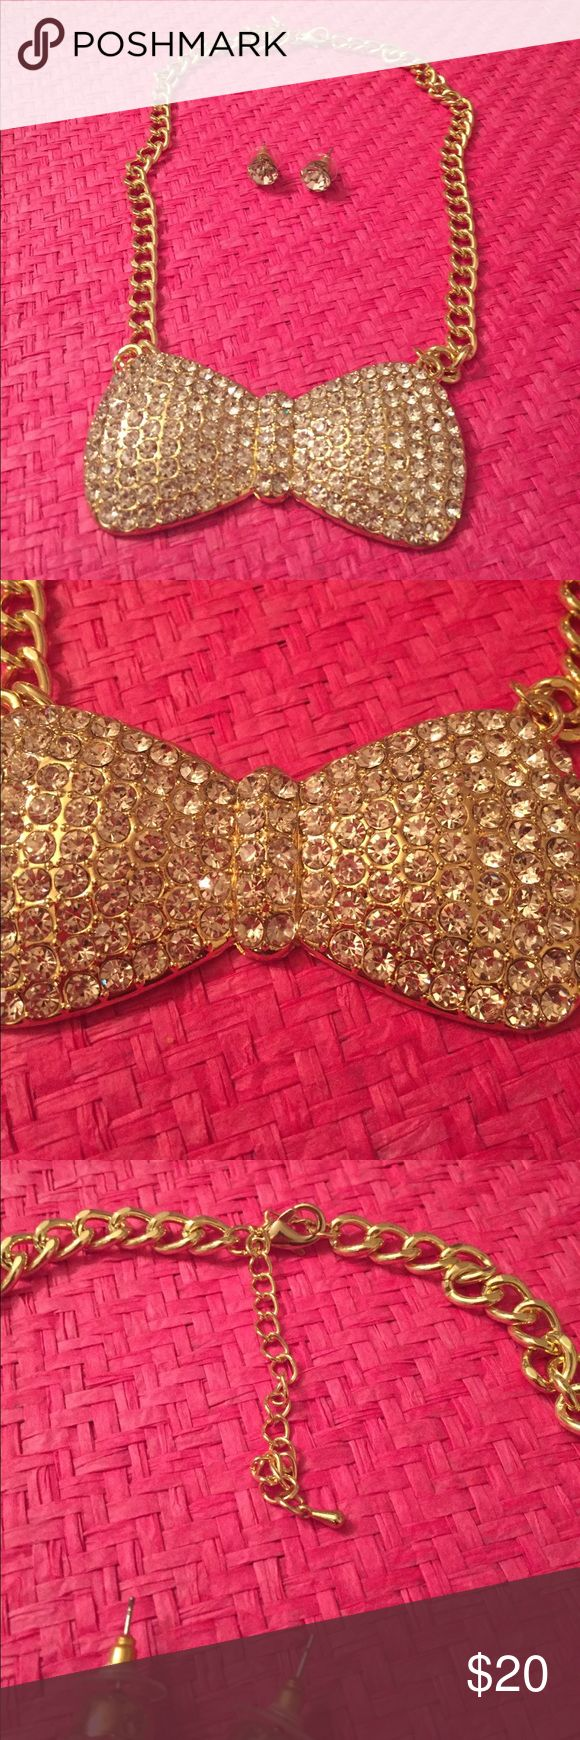 Rhinestone Bow Tie Necklace Set Beautiful gold and crystal rhinestones bow tie and earrings set. Earrings are for pierced ears.  Standard chain closure with extension chain. In excellent condition. Ghs Jewelry Jewelry Necklaces